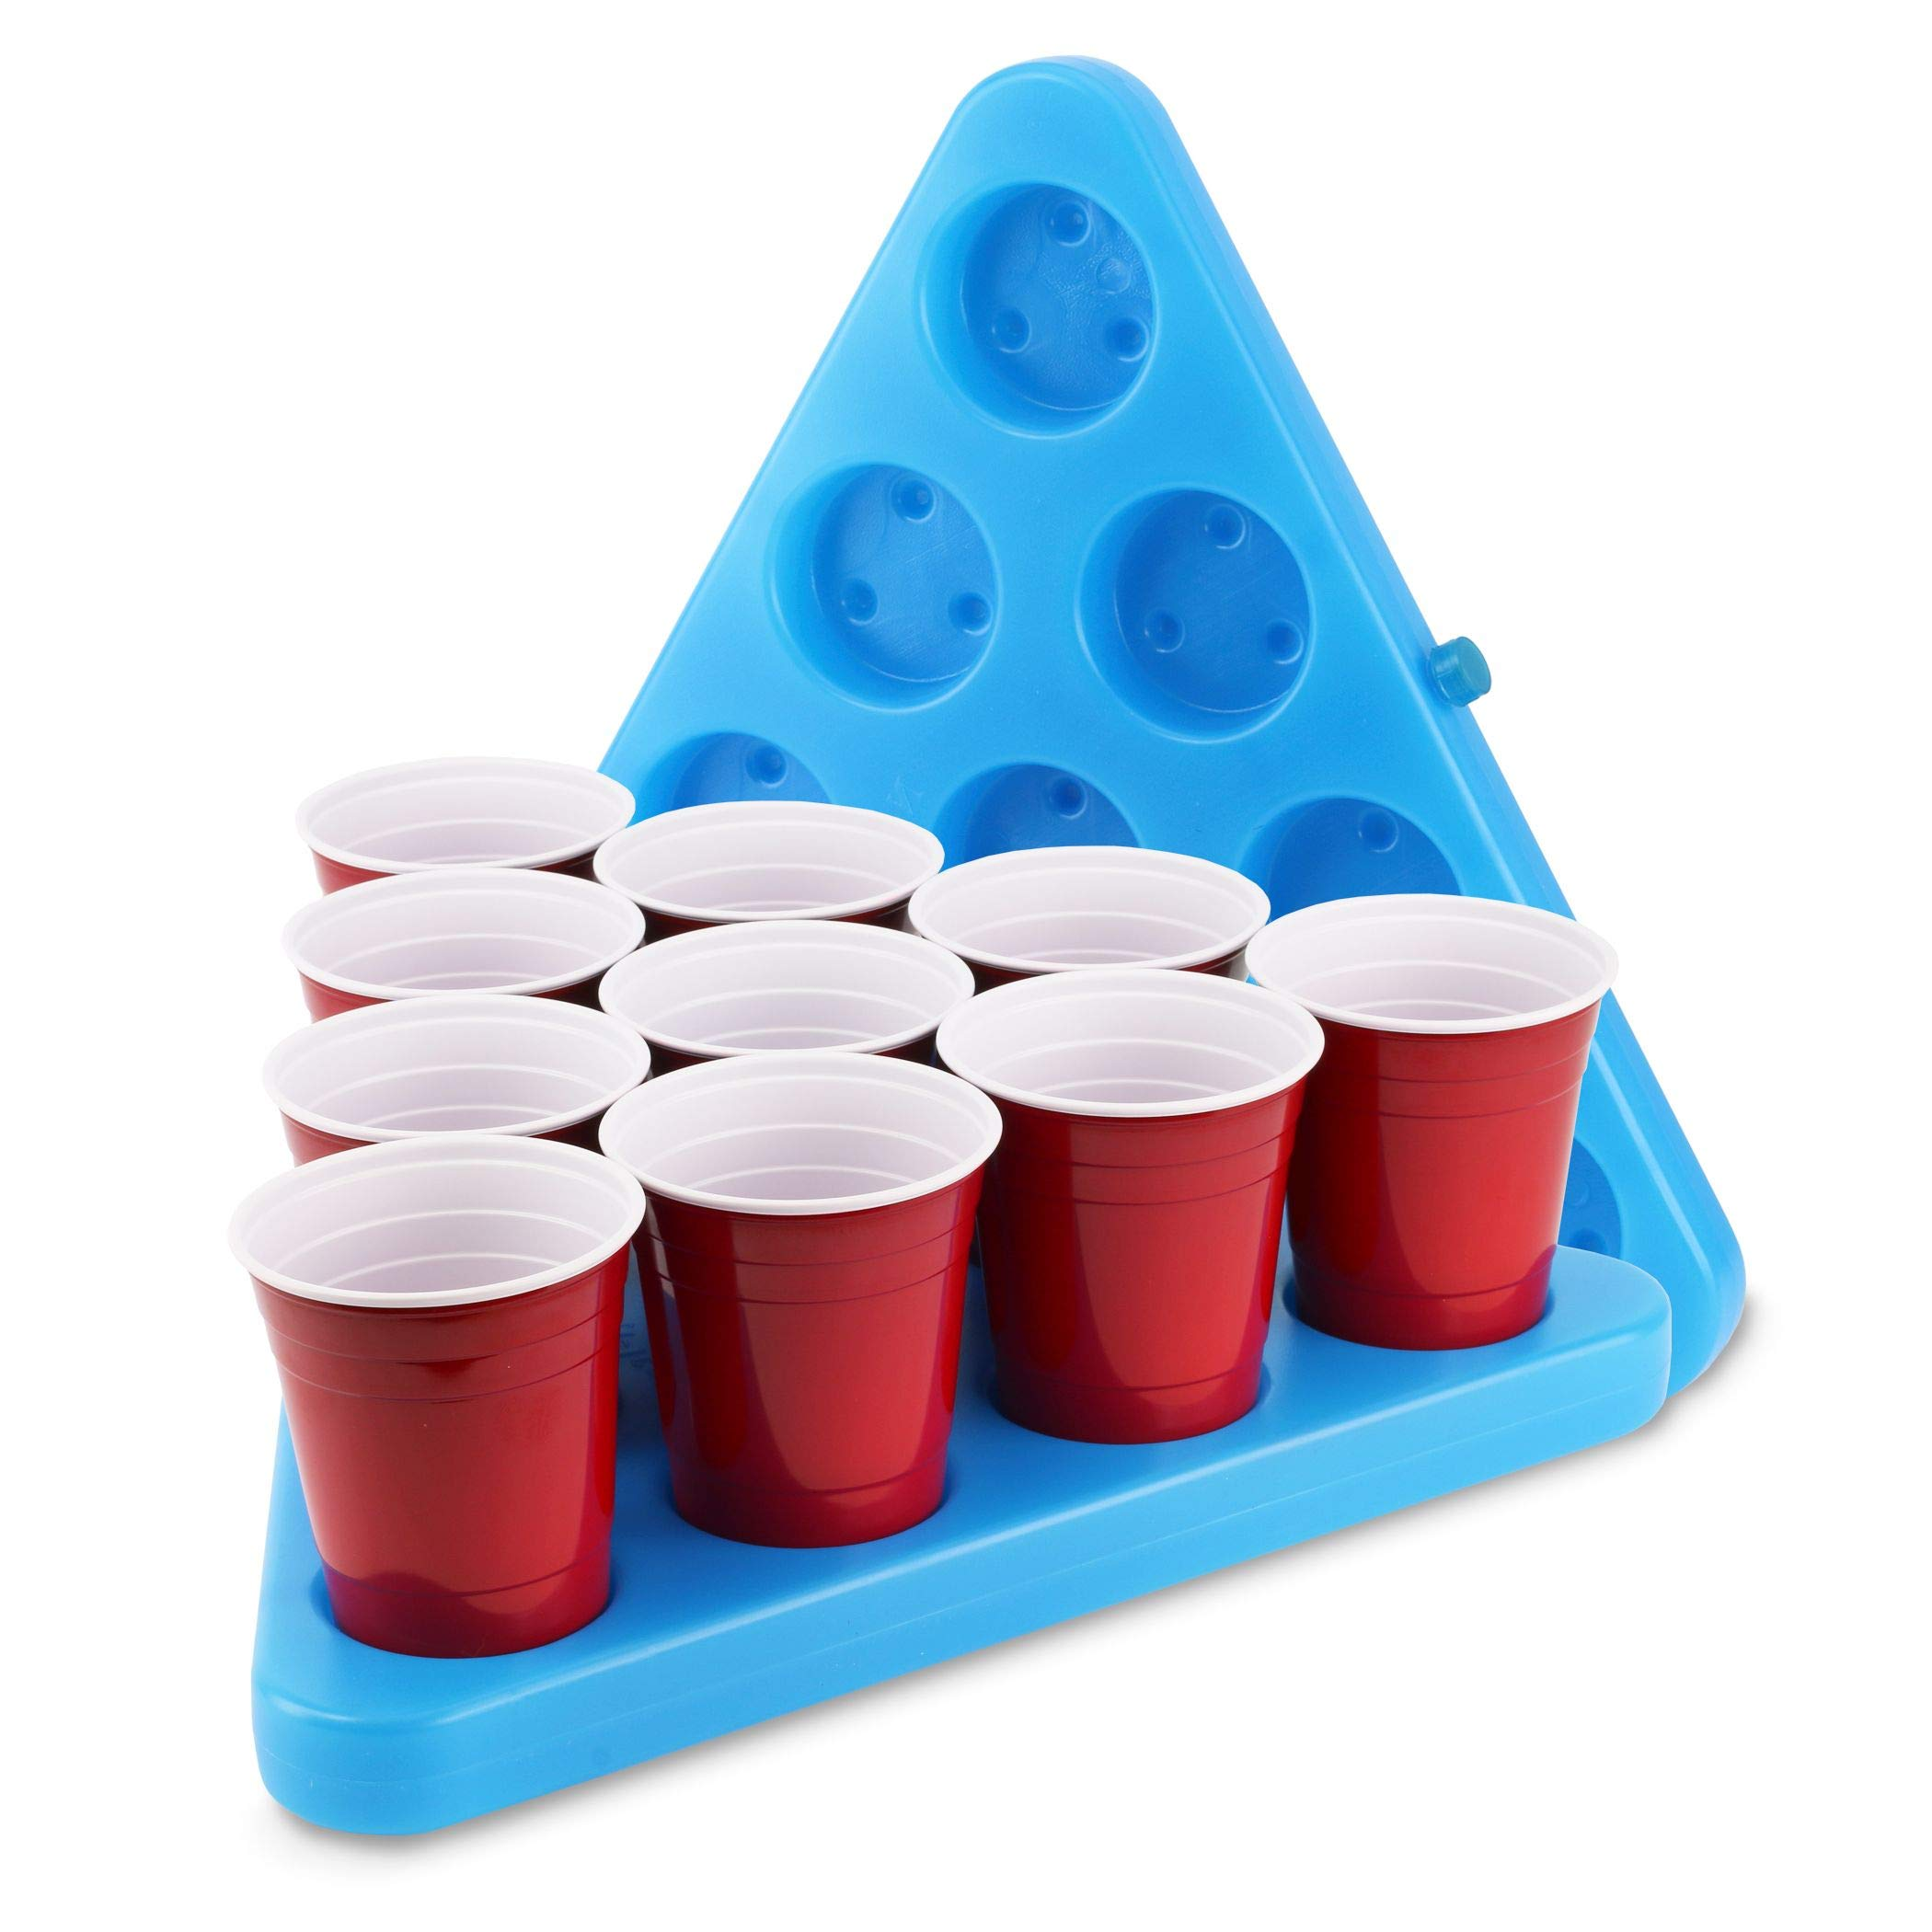 Aromzen N-Ice Rack Freezable Drinking Beer Pong Party Rack Set, Includes 2-Racks, 3-Balls and Game Rules